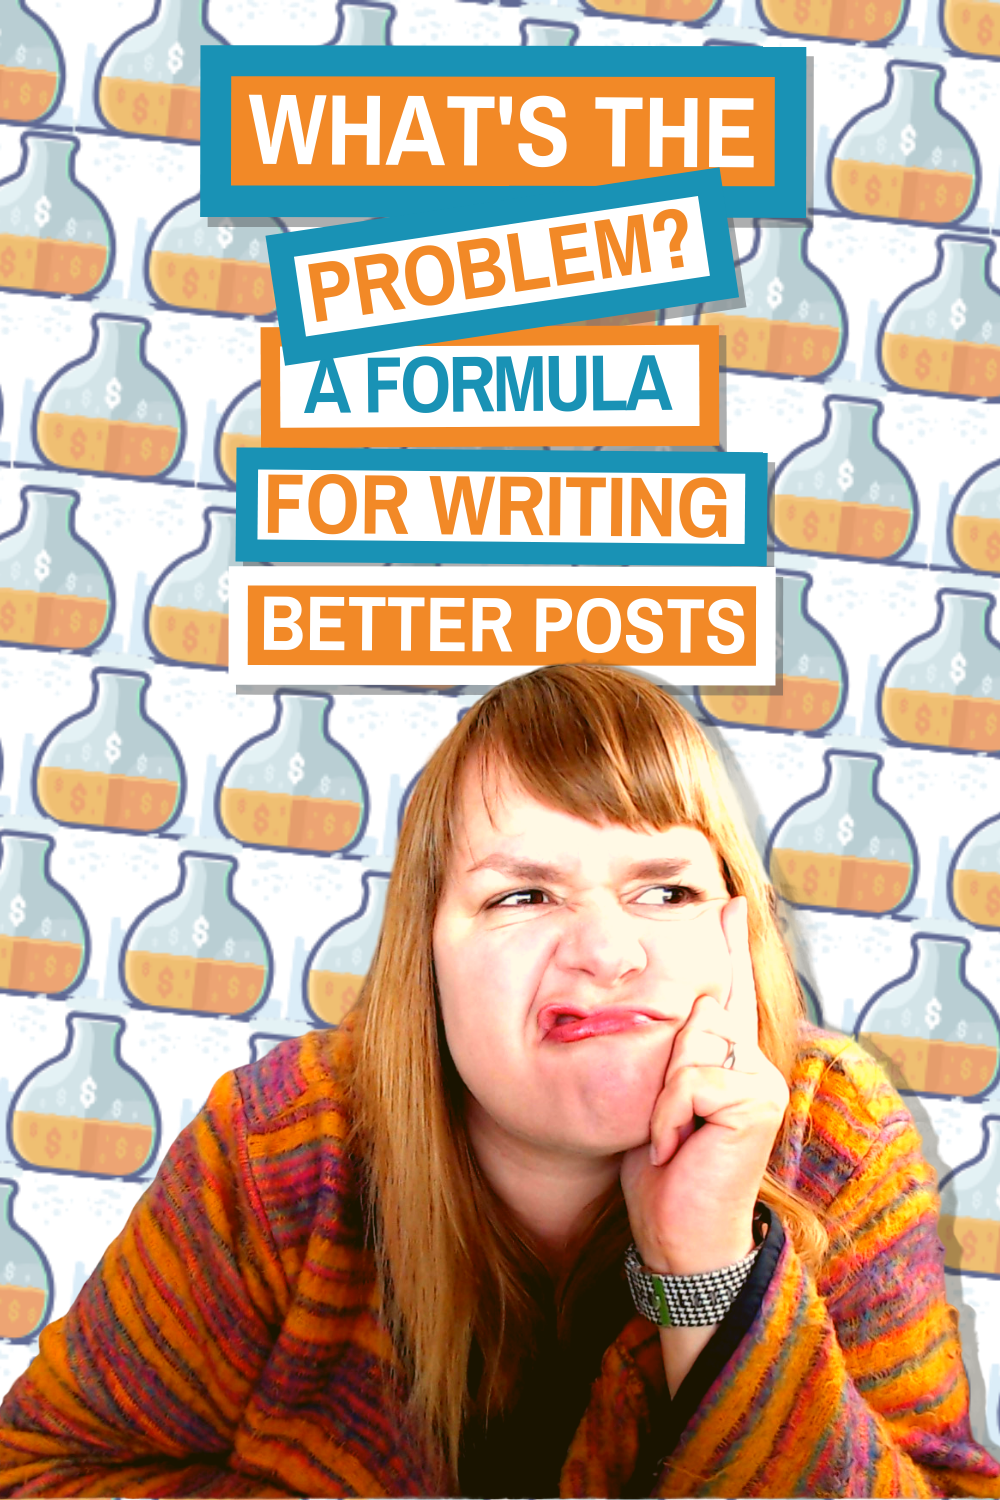 What's Your Problem? How To Write Effective Marketing Posts Using My 3 Step Formula